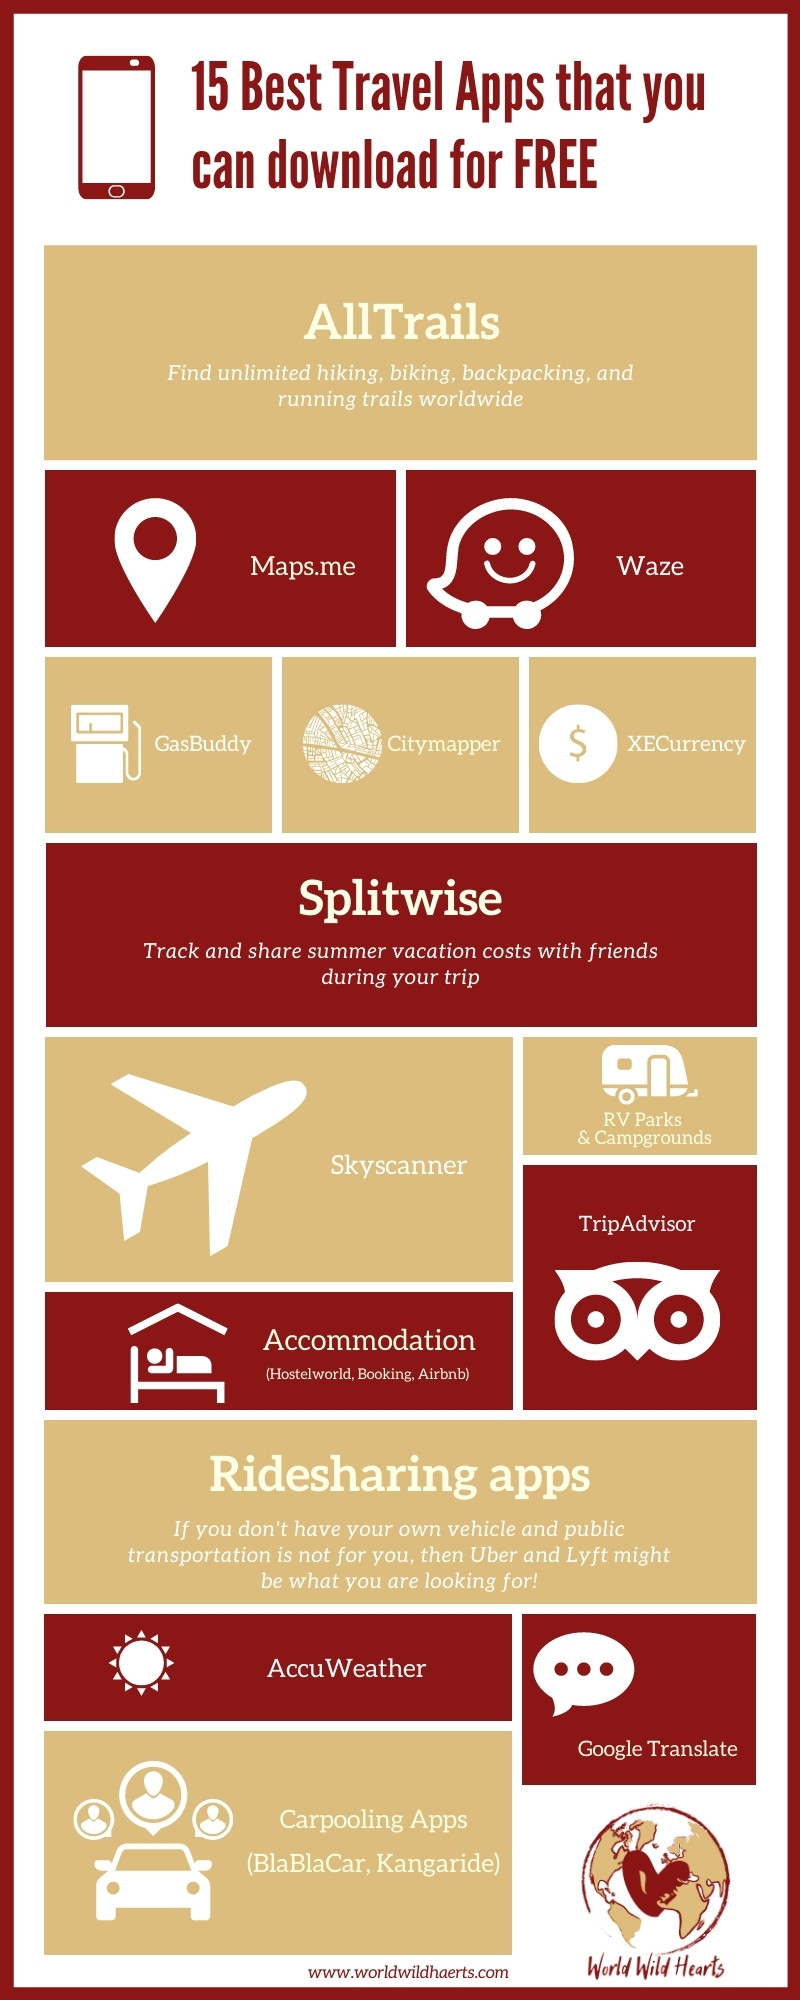 Best Travel Apps that you can download for free infographic